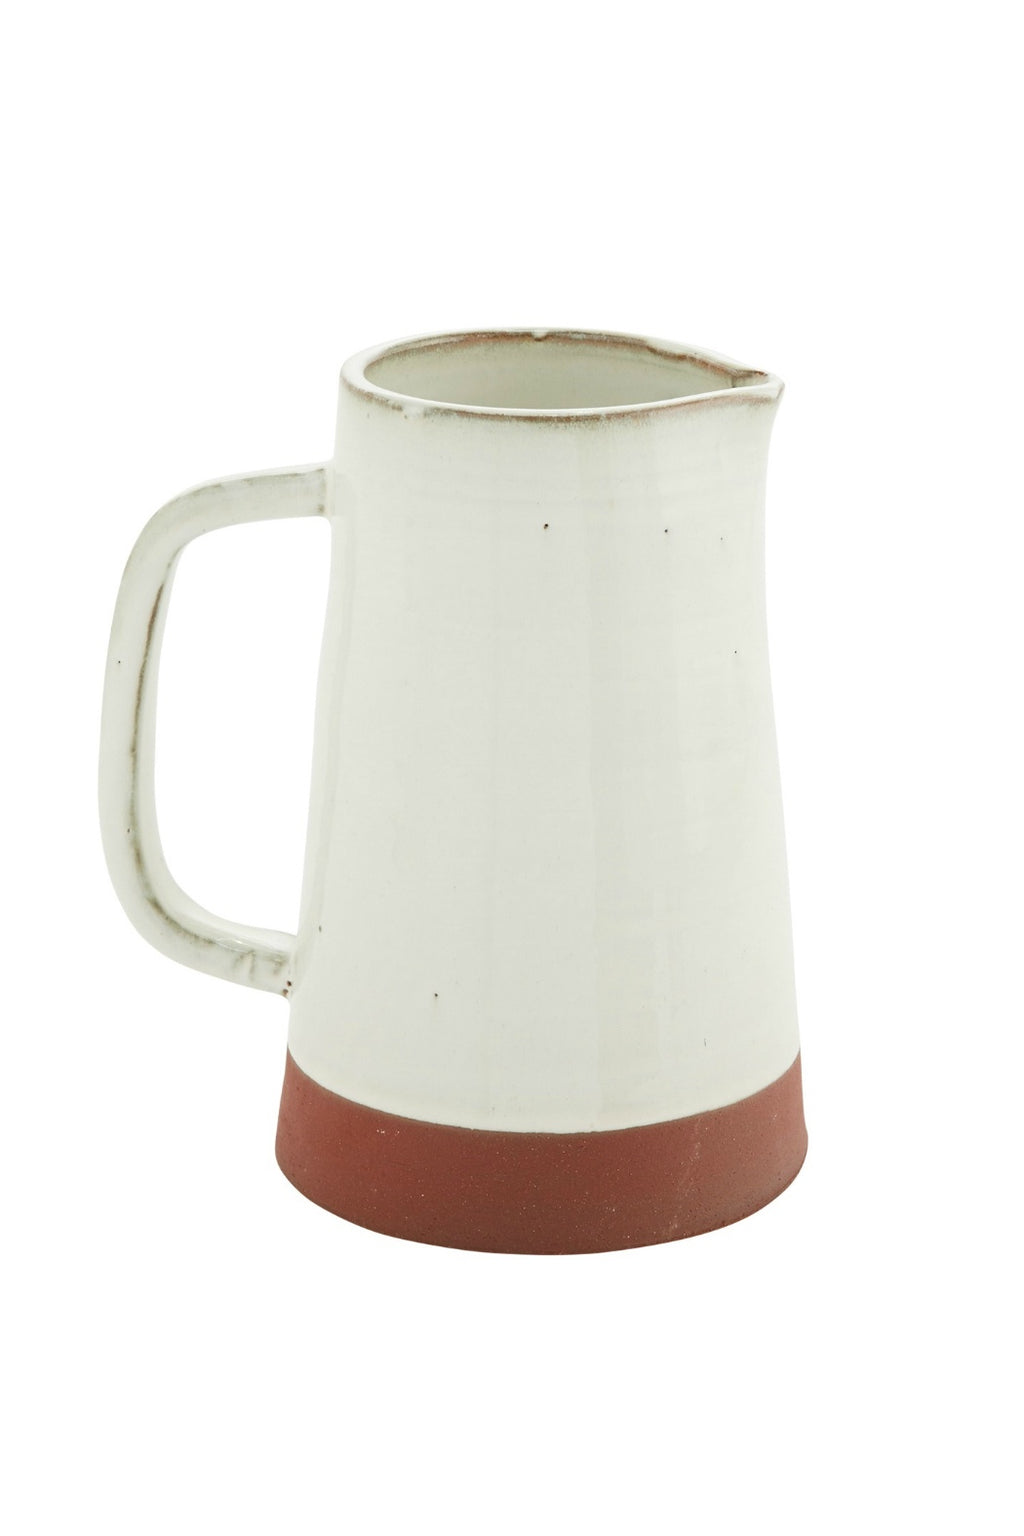 Accent Decor Katana Pitcher